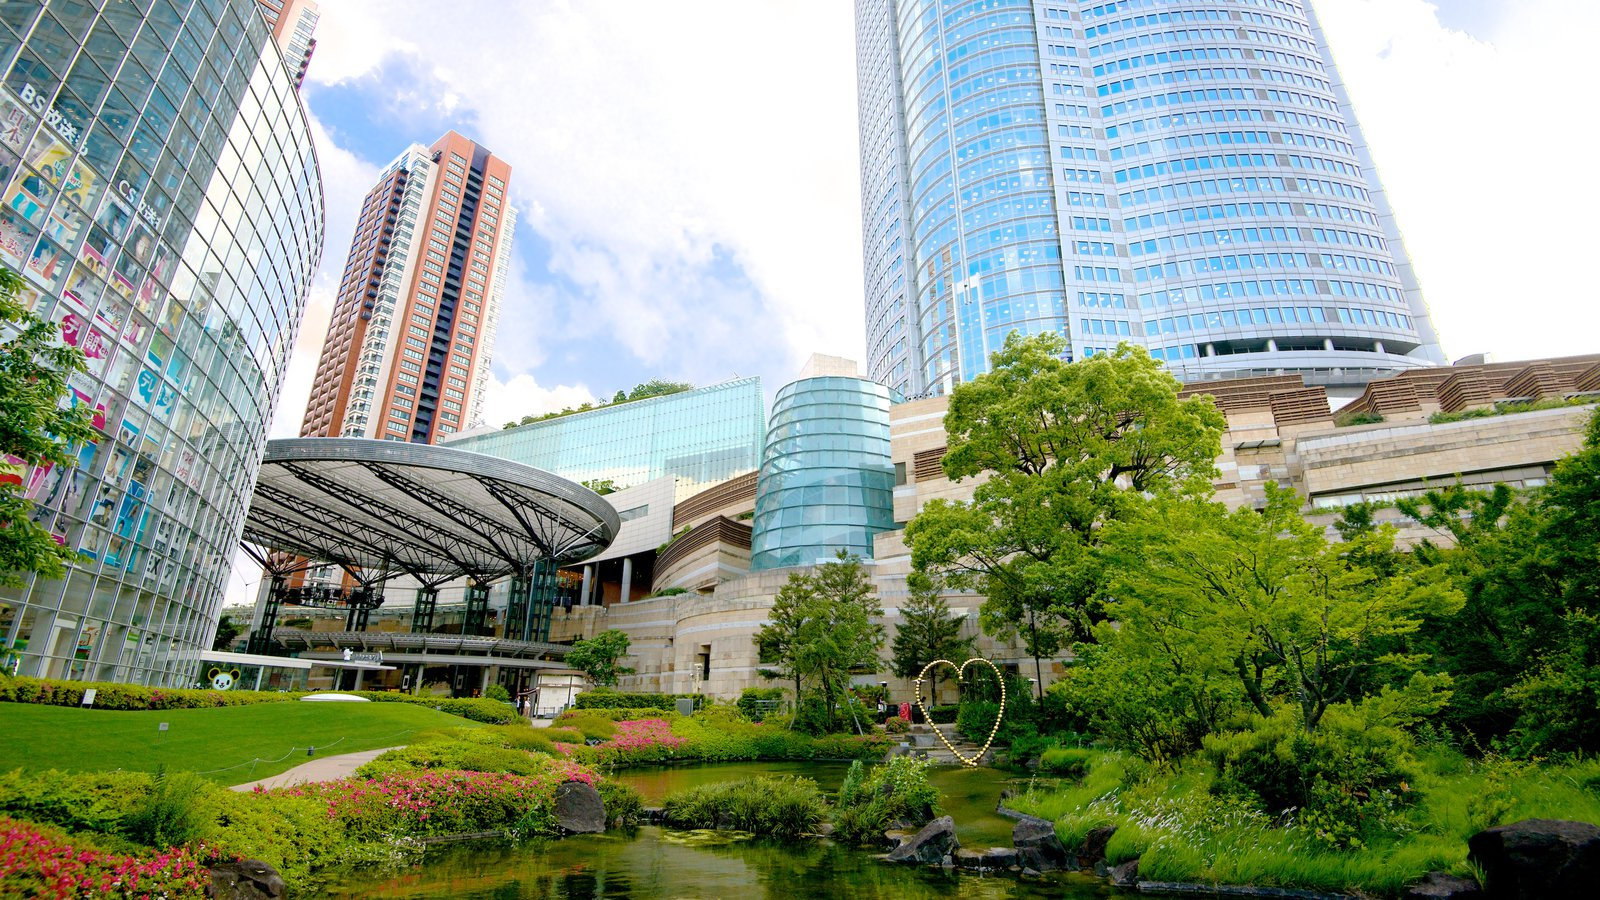 Shinobazu-ike Tokyo, Gardens & Parks Pictures: View Images of Roppongi Hills